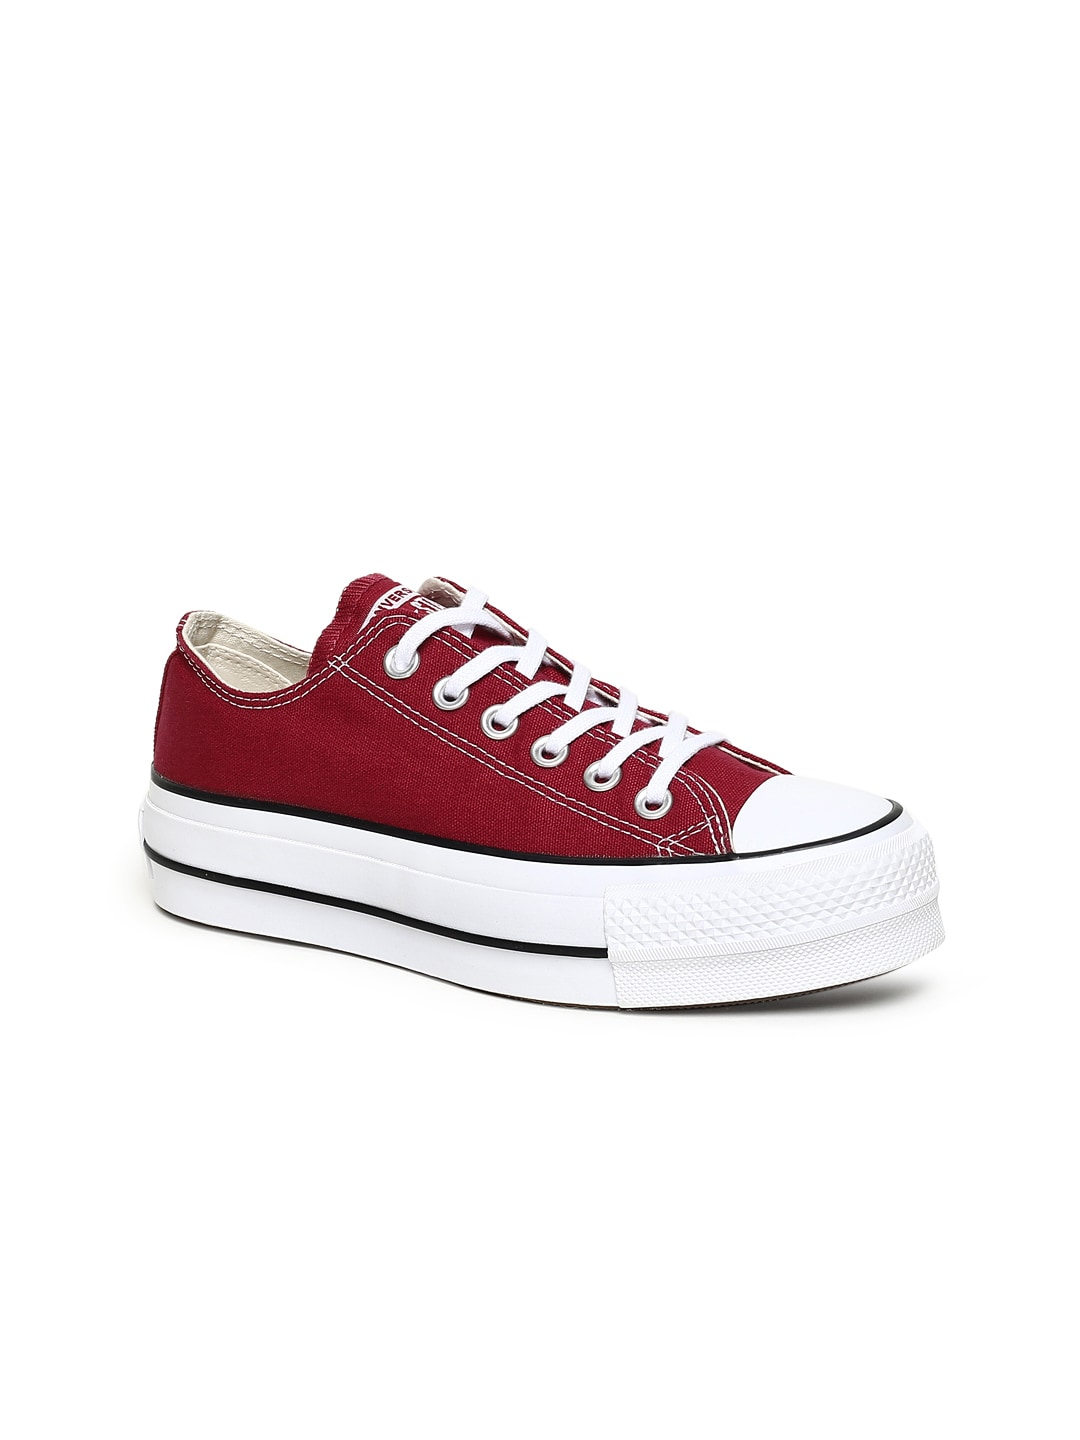 cd608749bfb9 Converse Casual Shoes Tshirts - Buy Converse Casual Shoes Tshirts online in  India